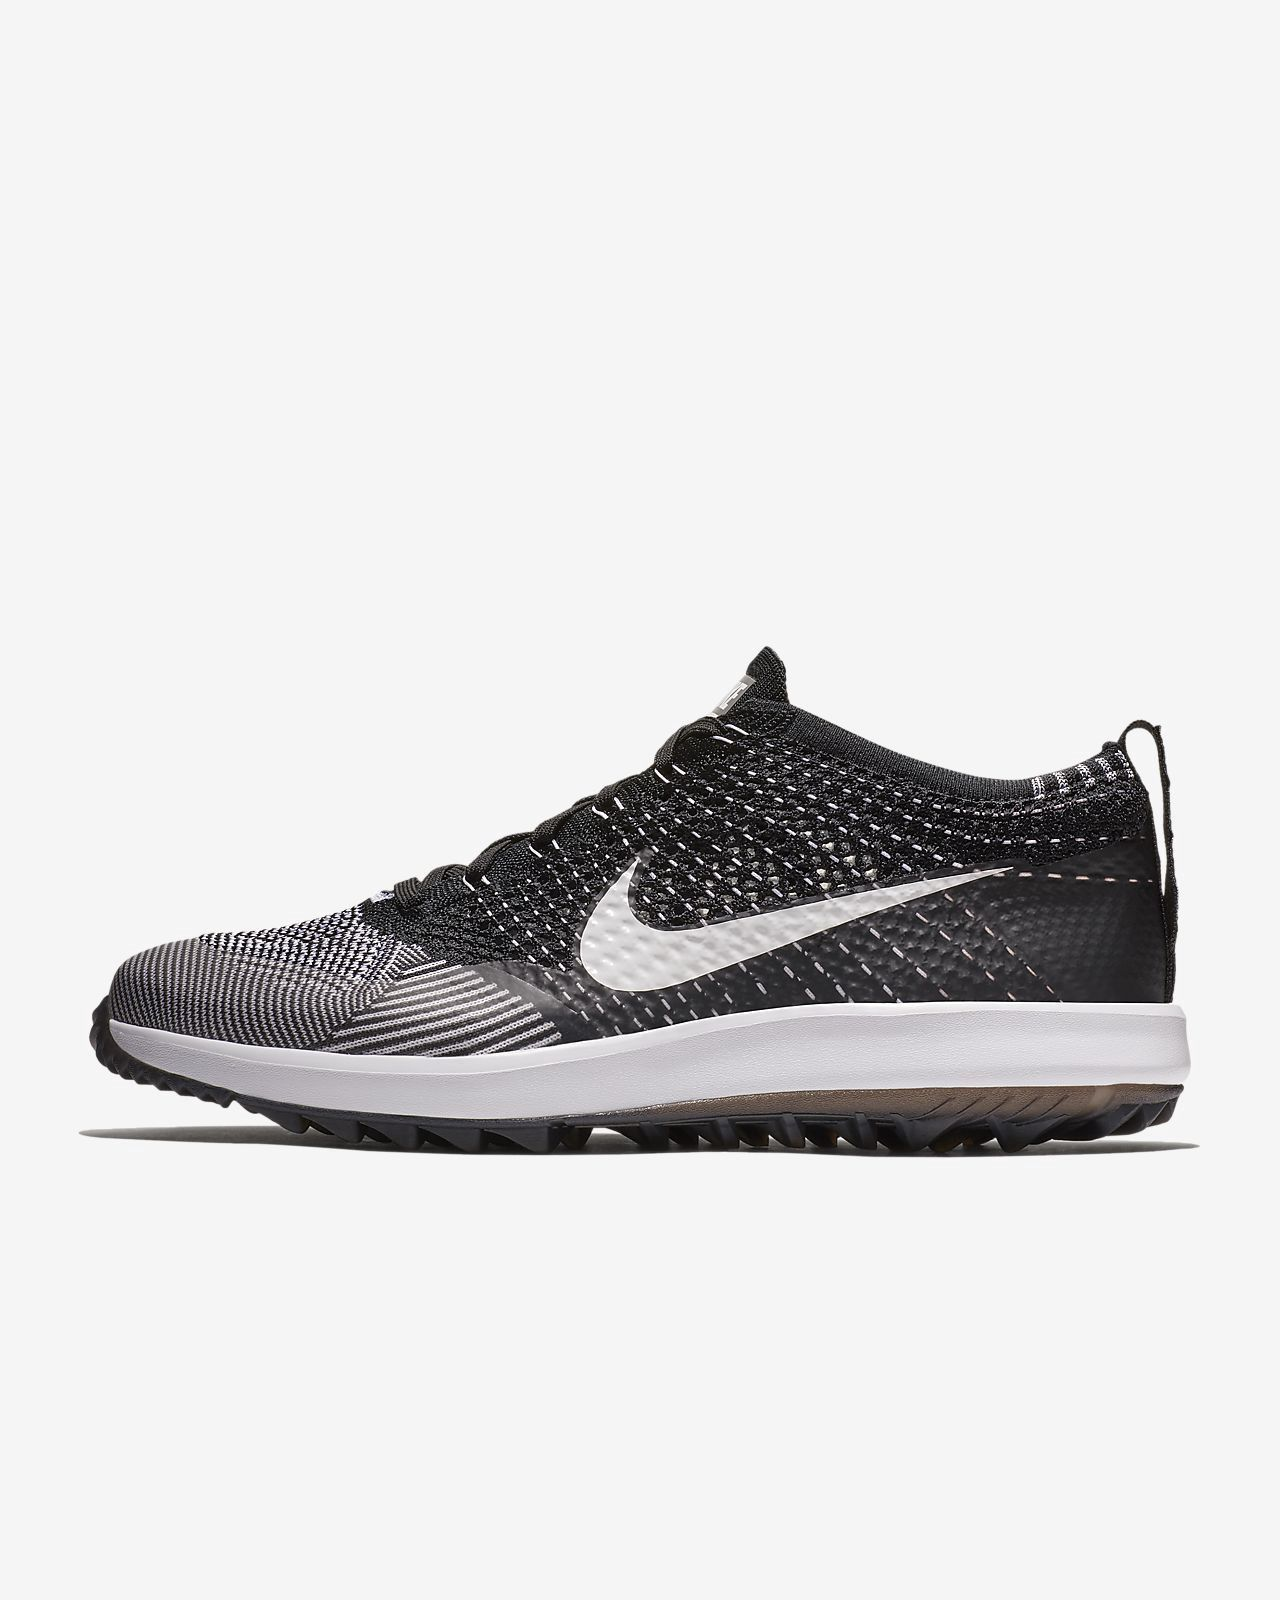 6381d6b6bd4ef Nike Flyknit Racer G Men's Golf Shoe - 7 in 2019 | Products | Mens ...